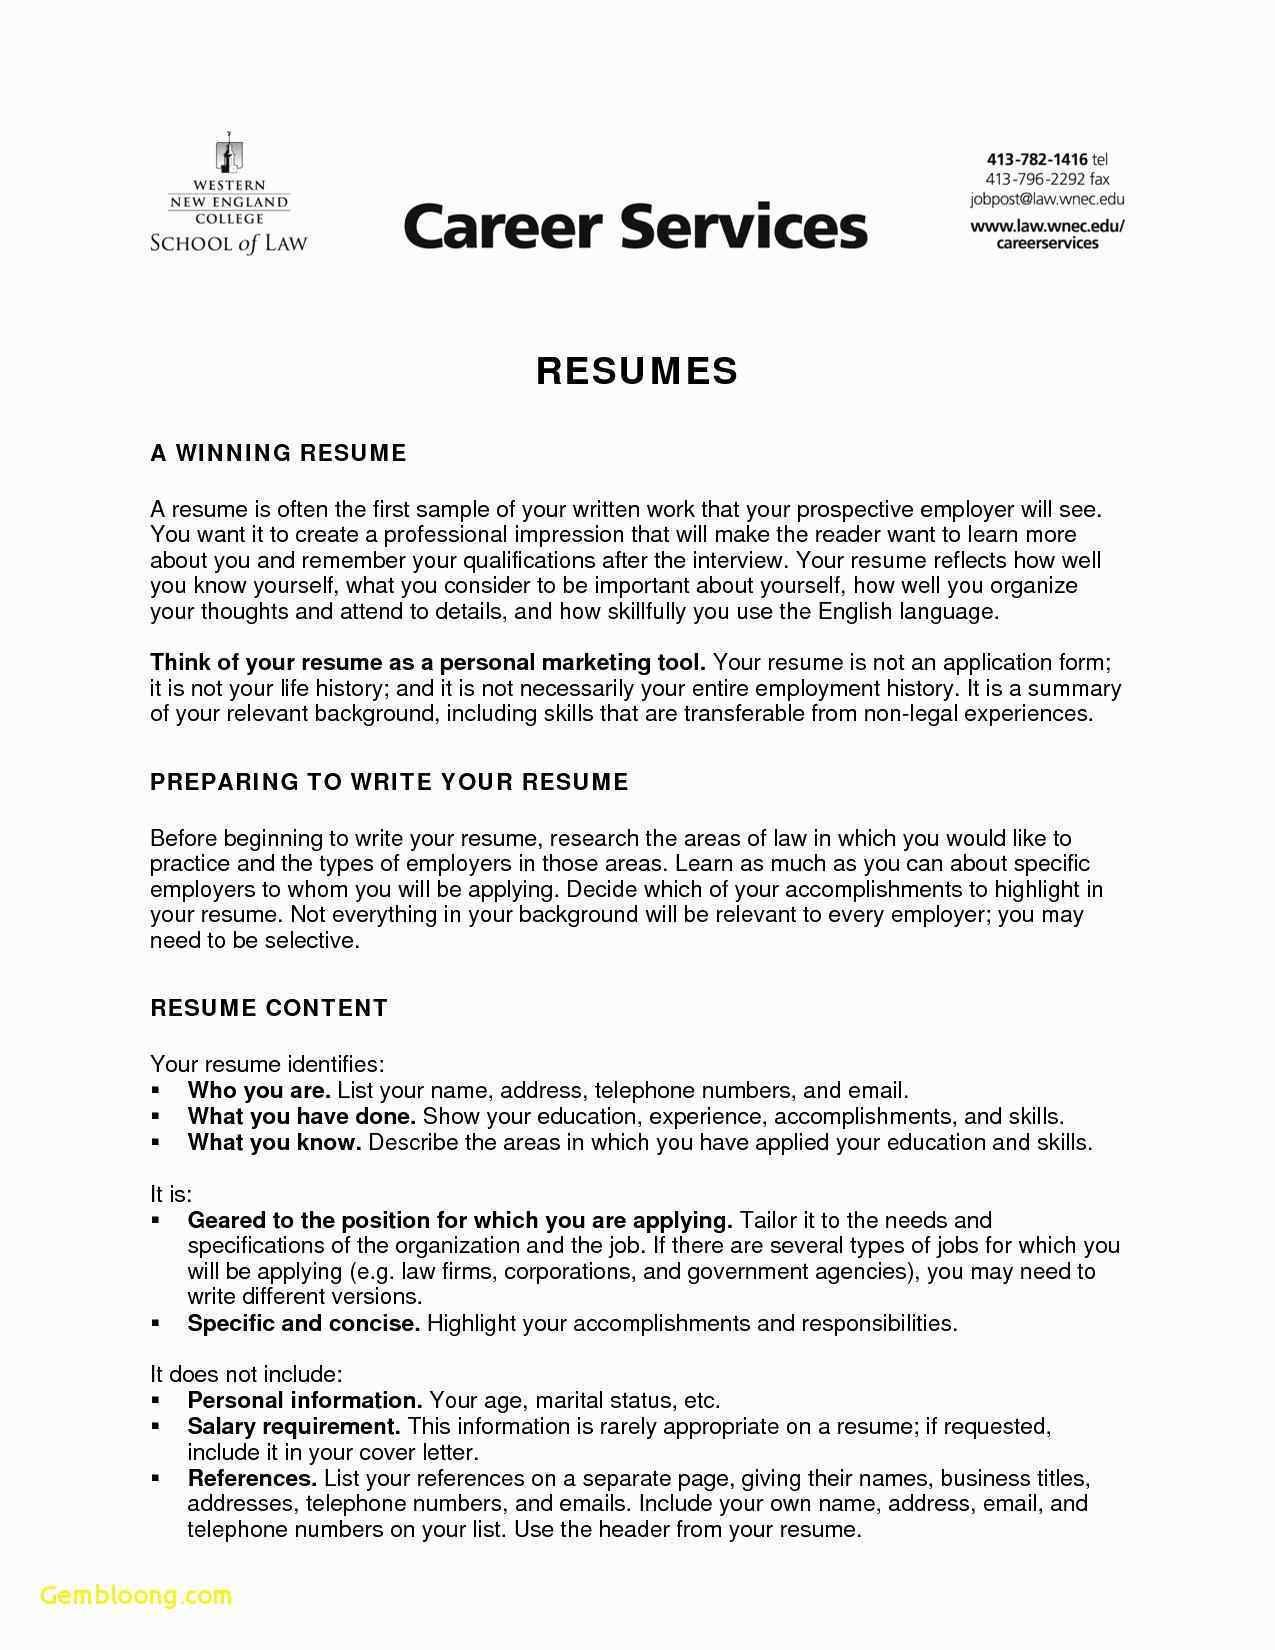 E Tc Engineer College Resume Job Resume Examples Job Cover Letter